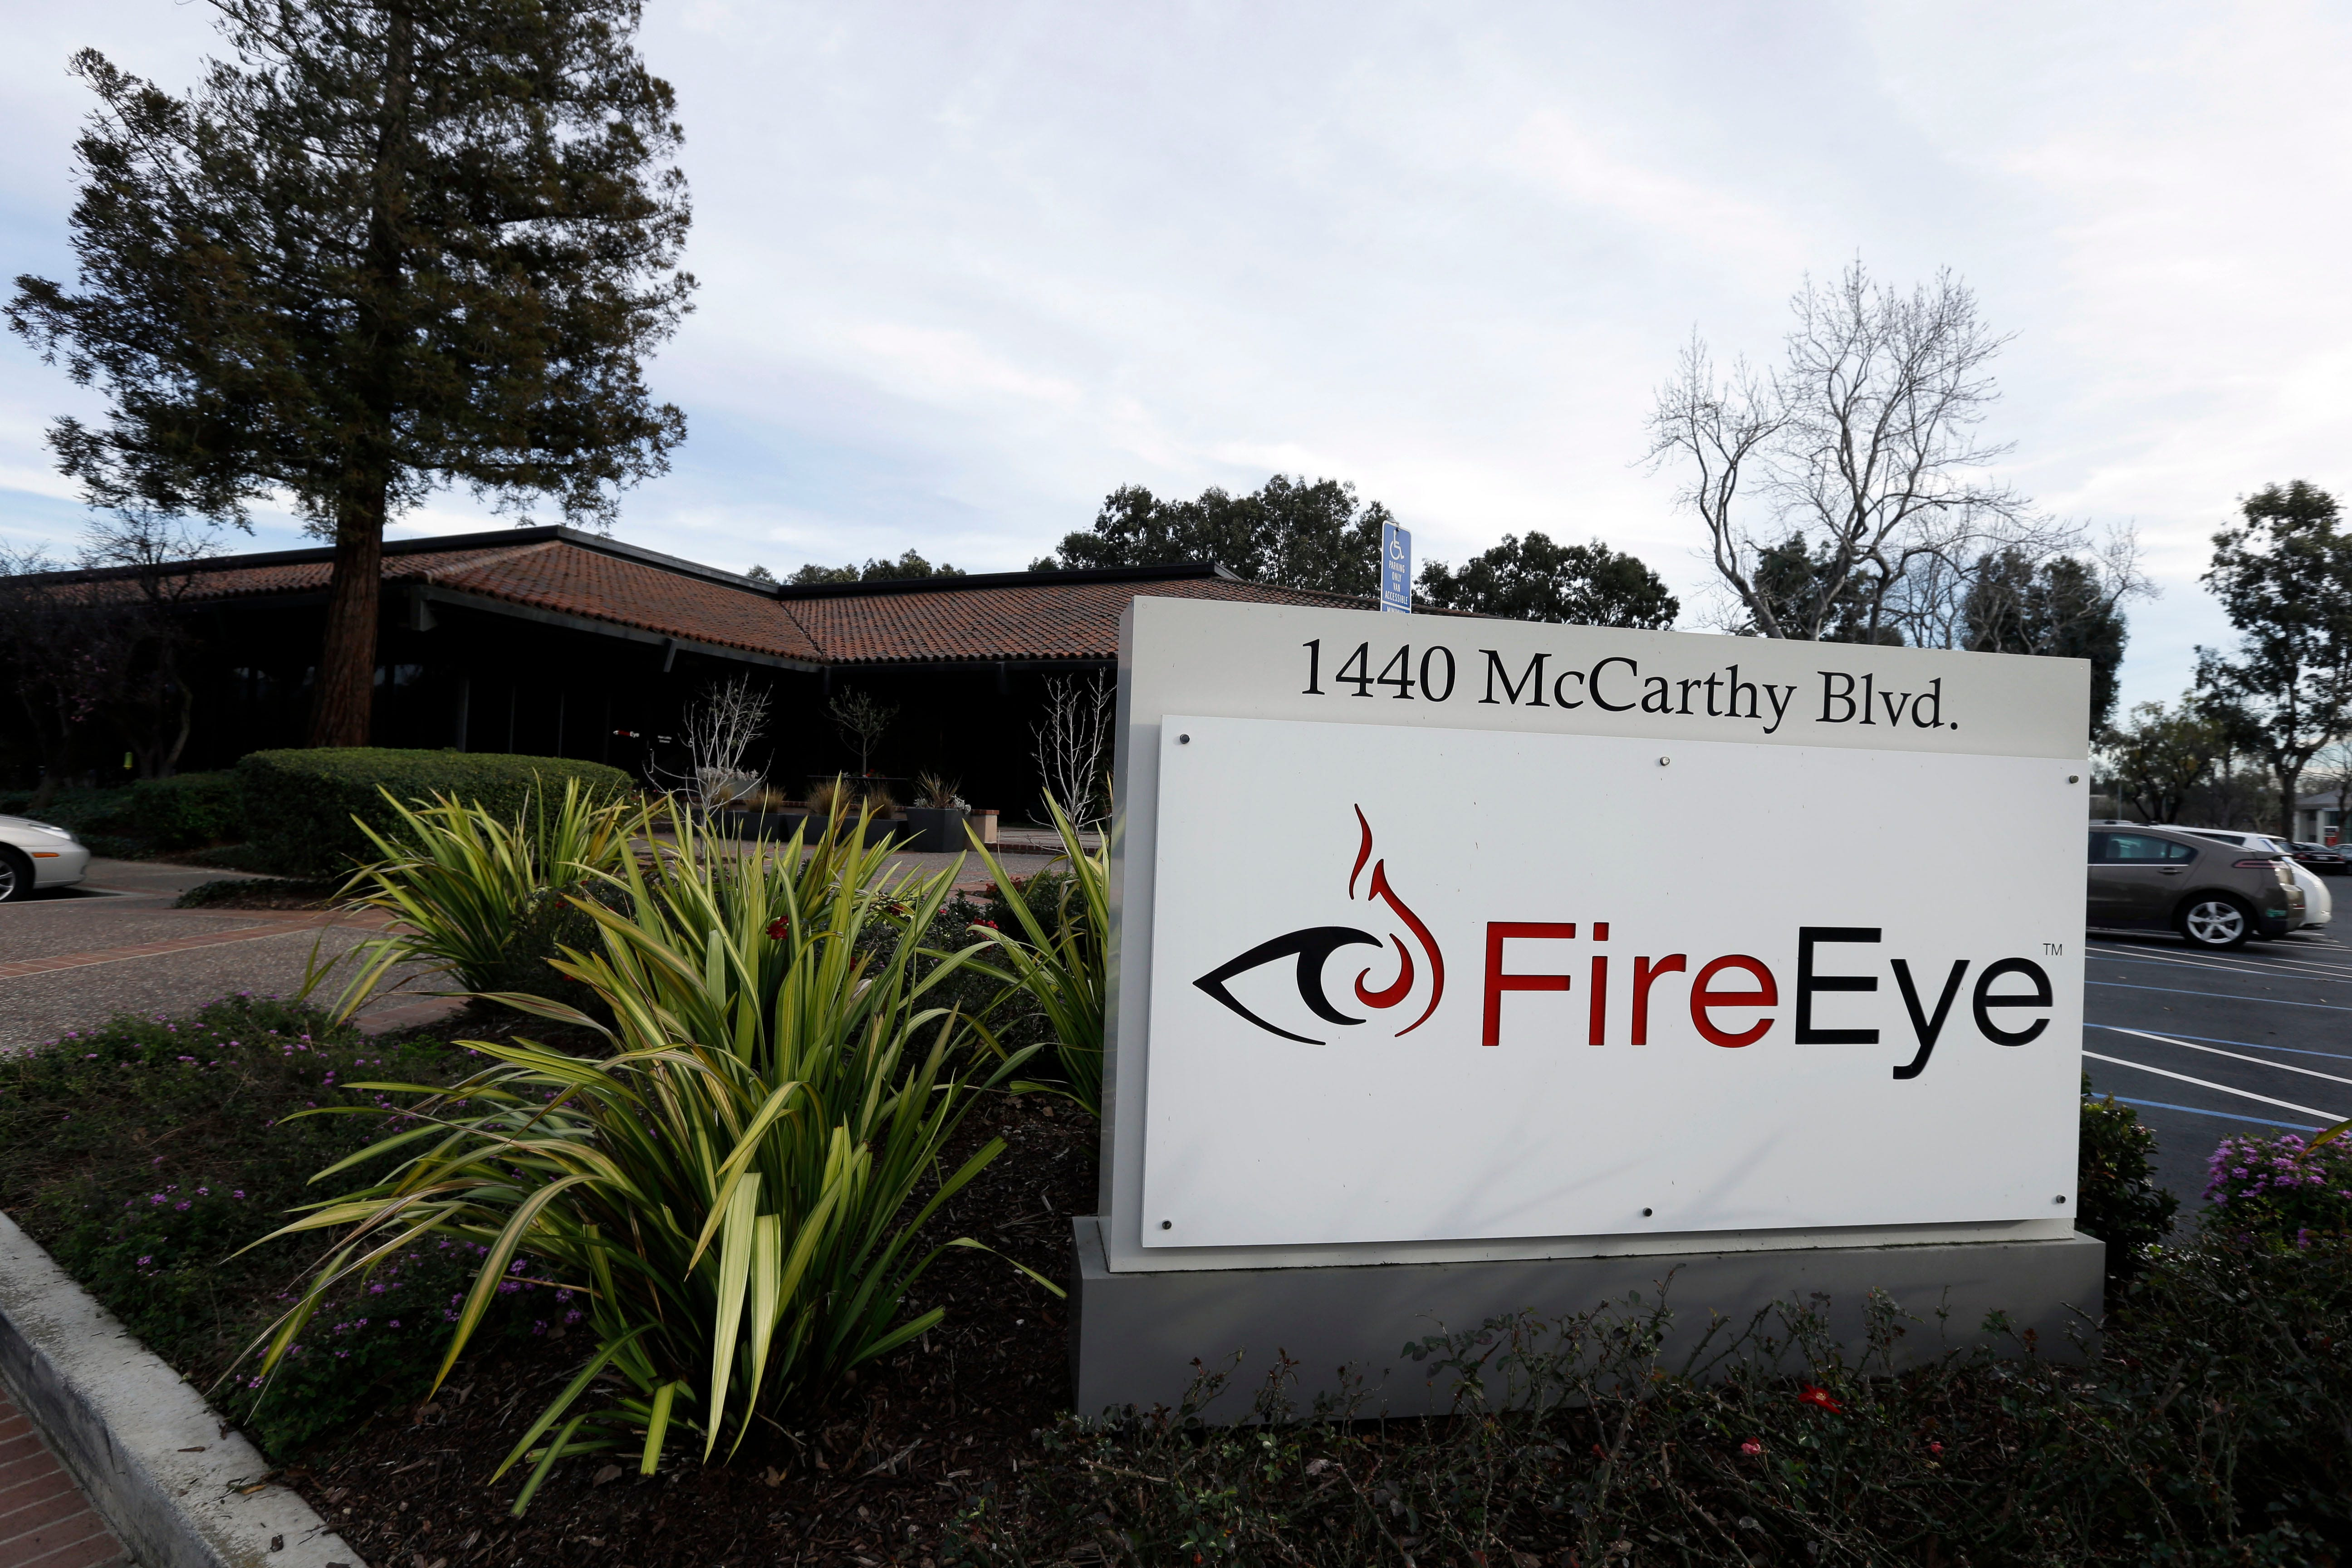 What you need to know about the FireEye hack: Cybersecurity attack against US government